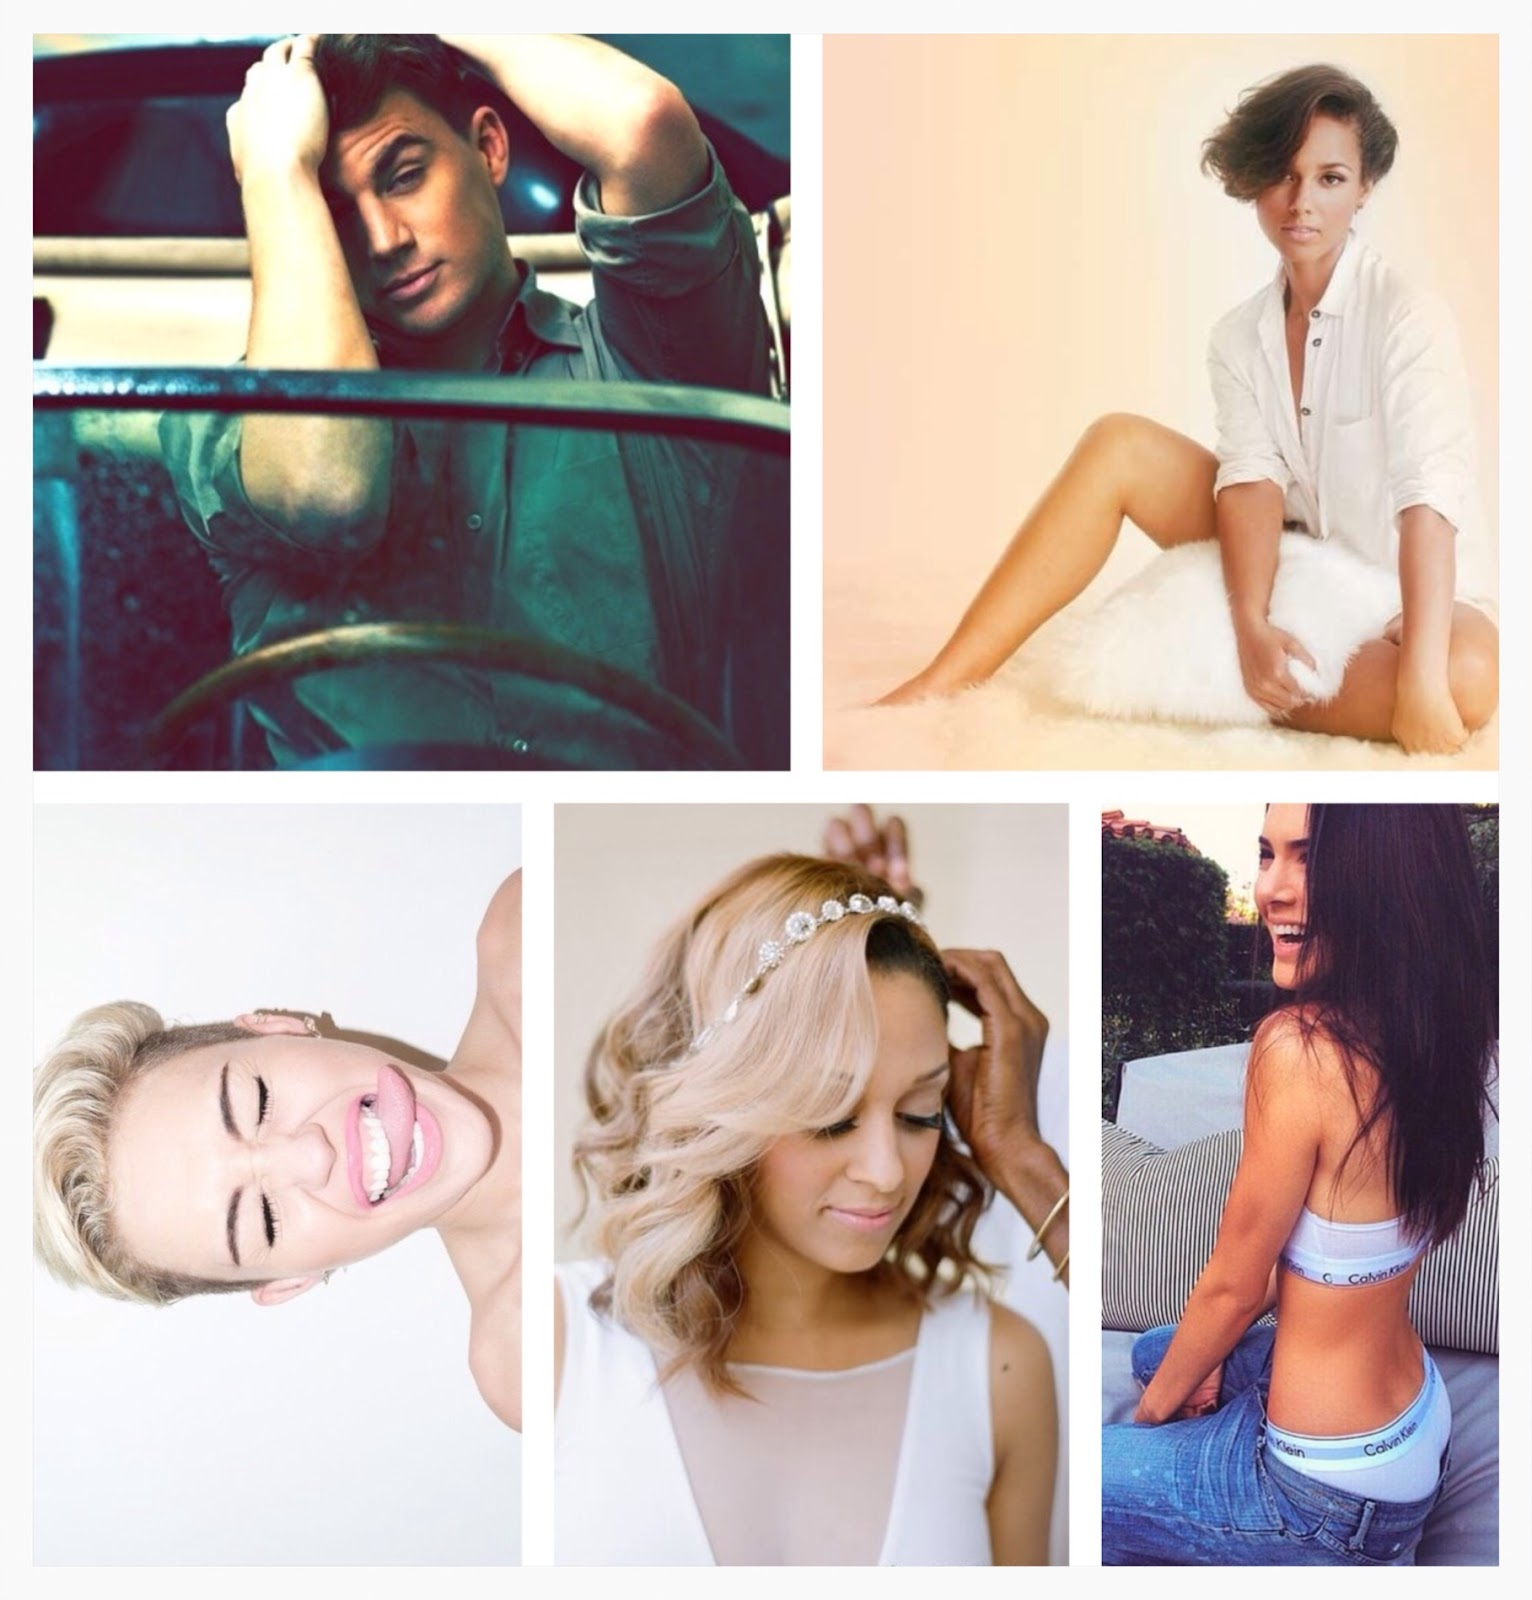 channing tatum, alicia keys, kendal jenner calvins, miley cyrus tongue, tia and tamara mowry, julianne hough